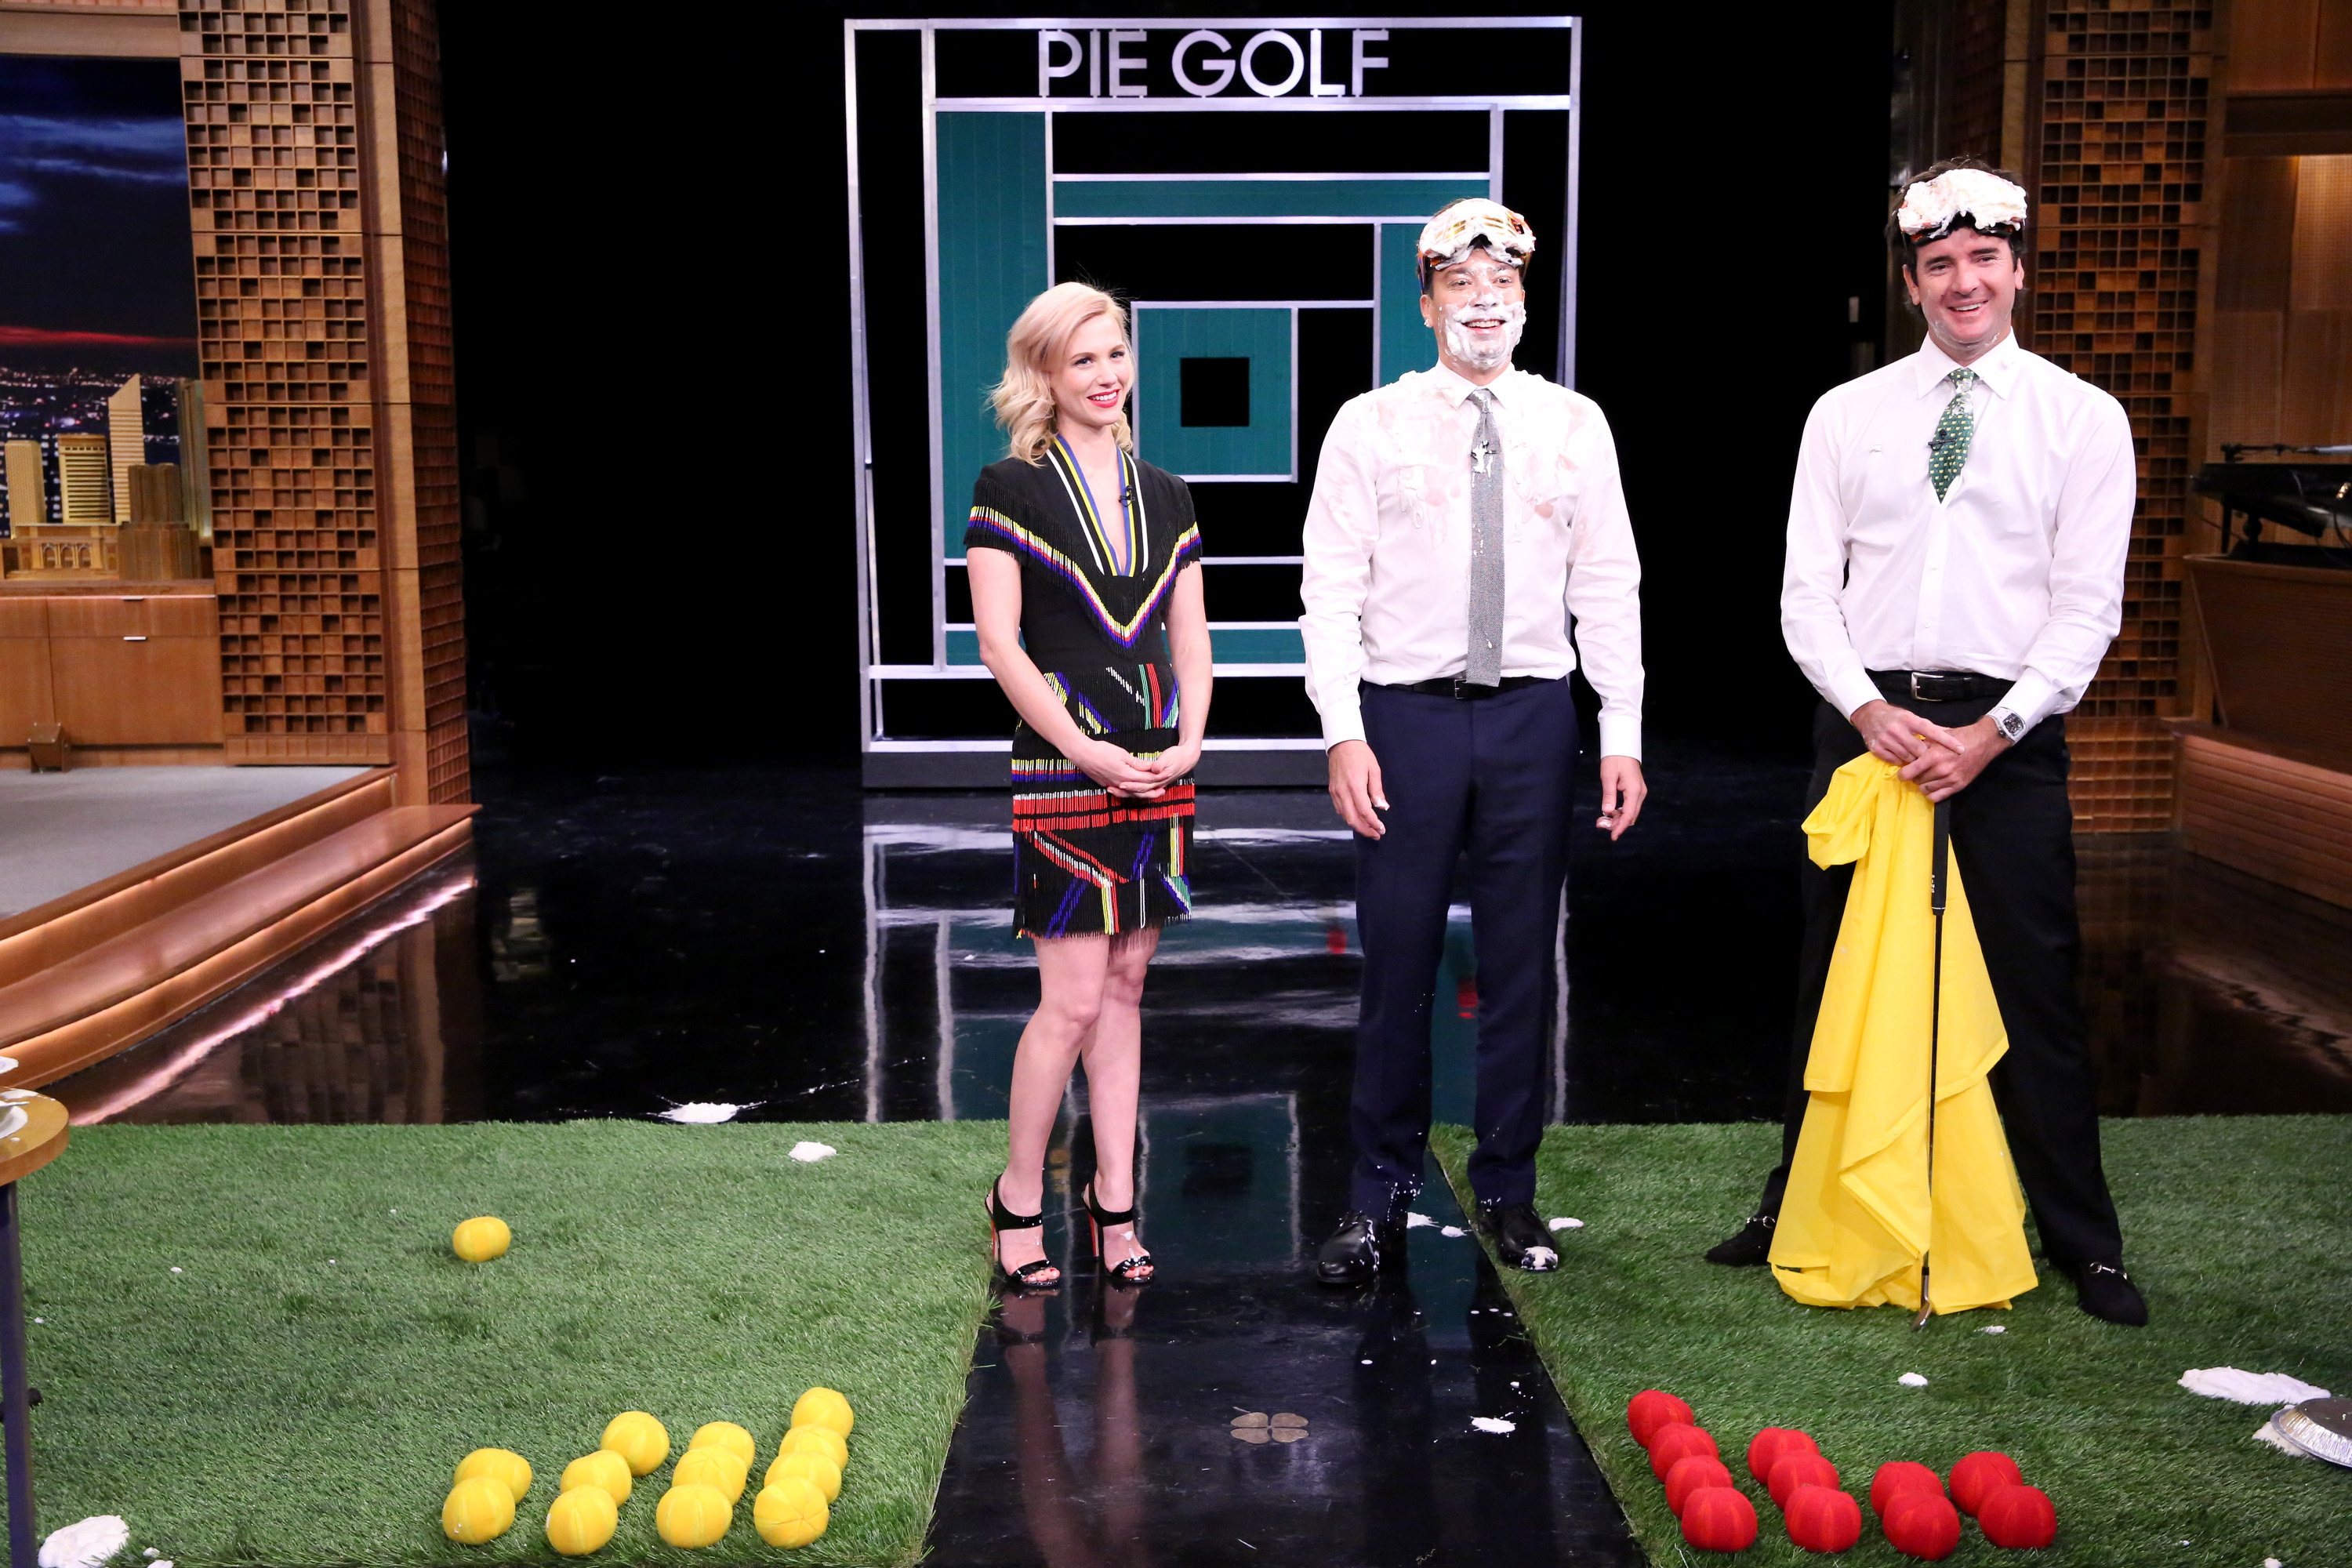 Bubba Watson received the Pie Golf Poncho for beating Jimmy Fallon at the messy sport.